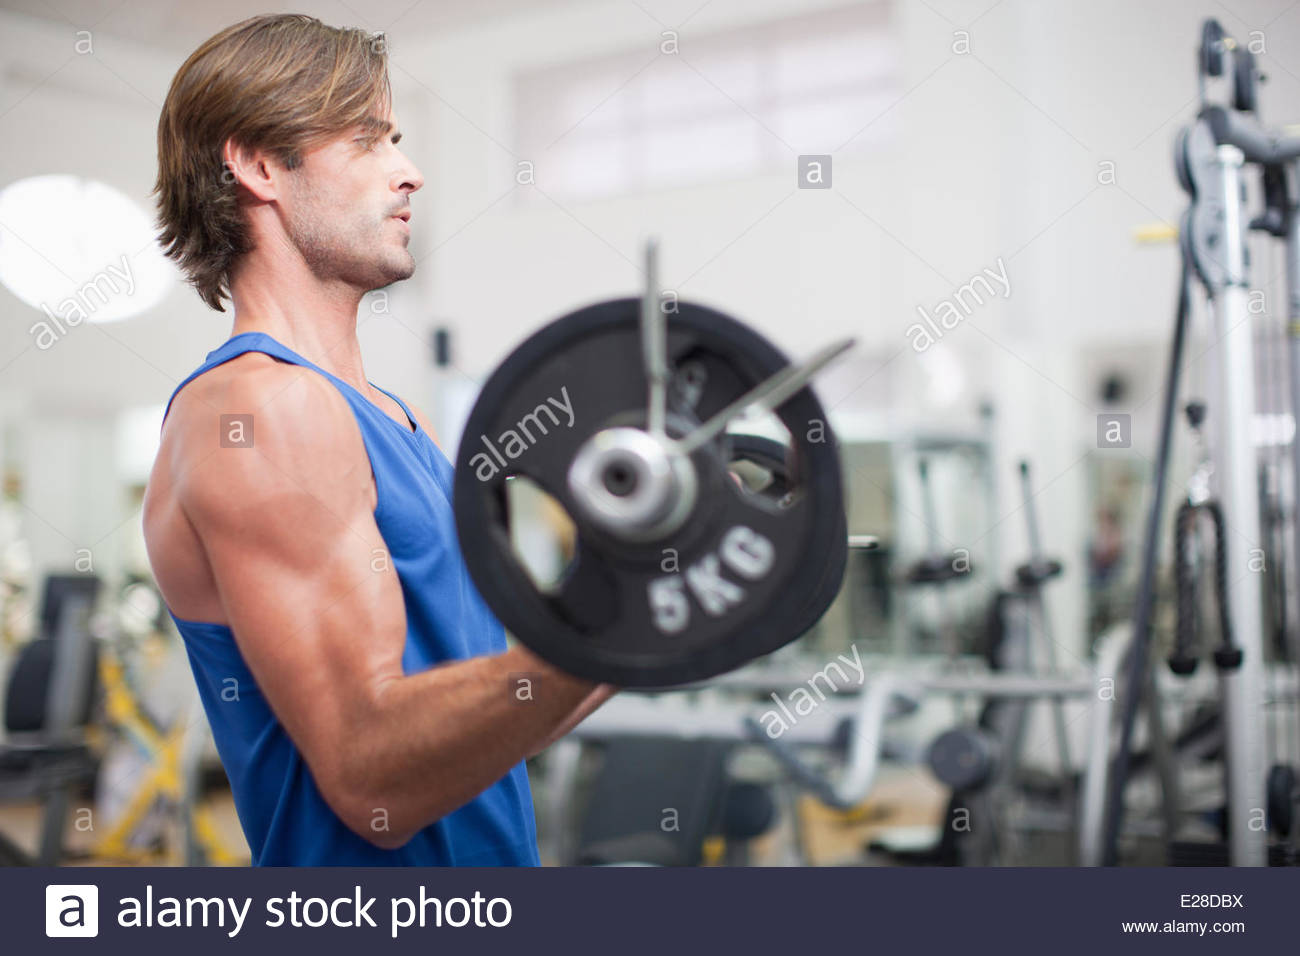 Man lifting barbell in gymnasium Photo Stock